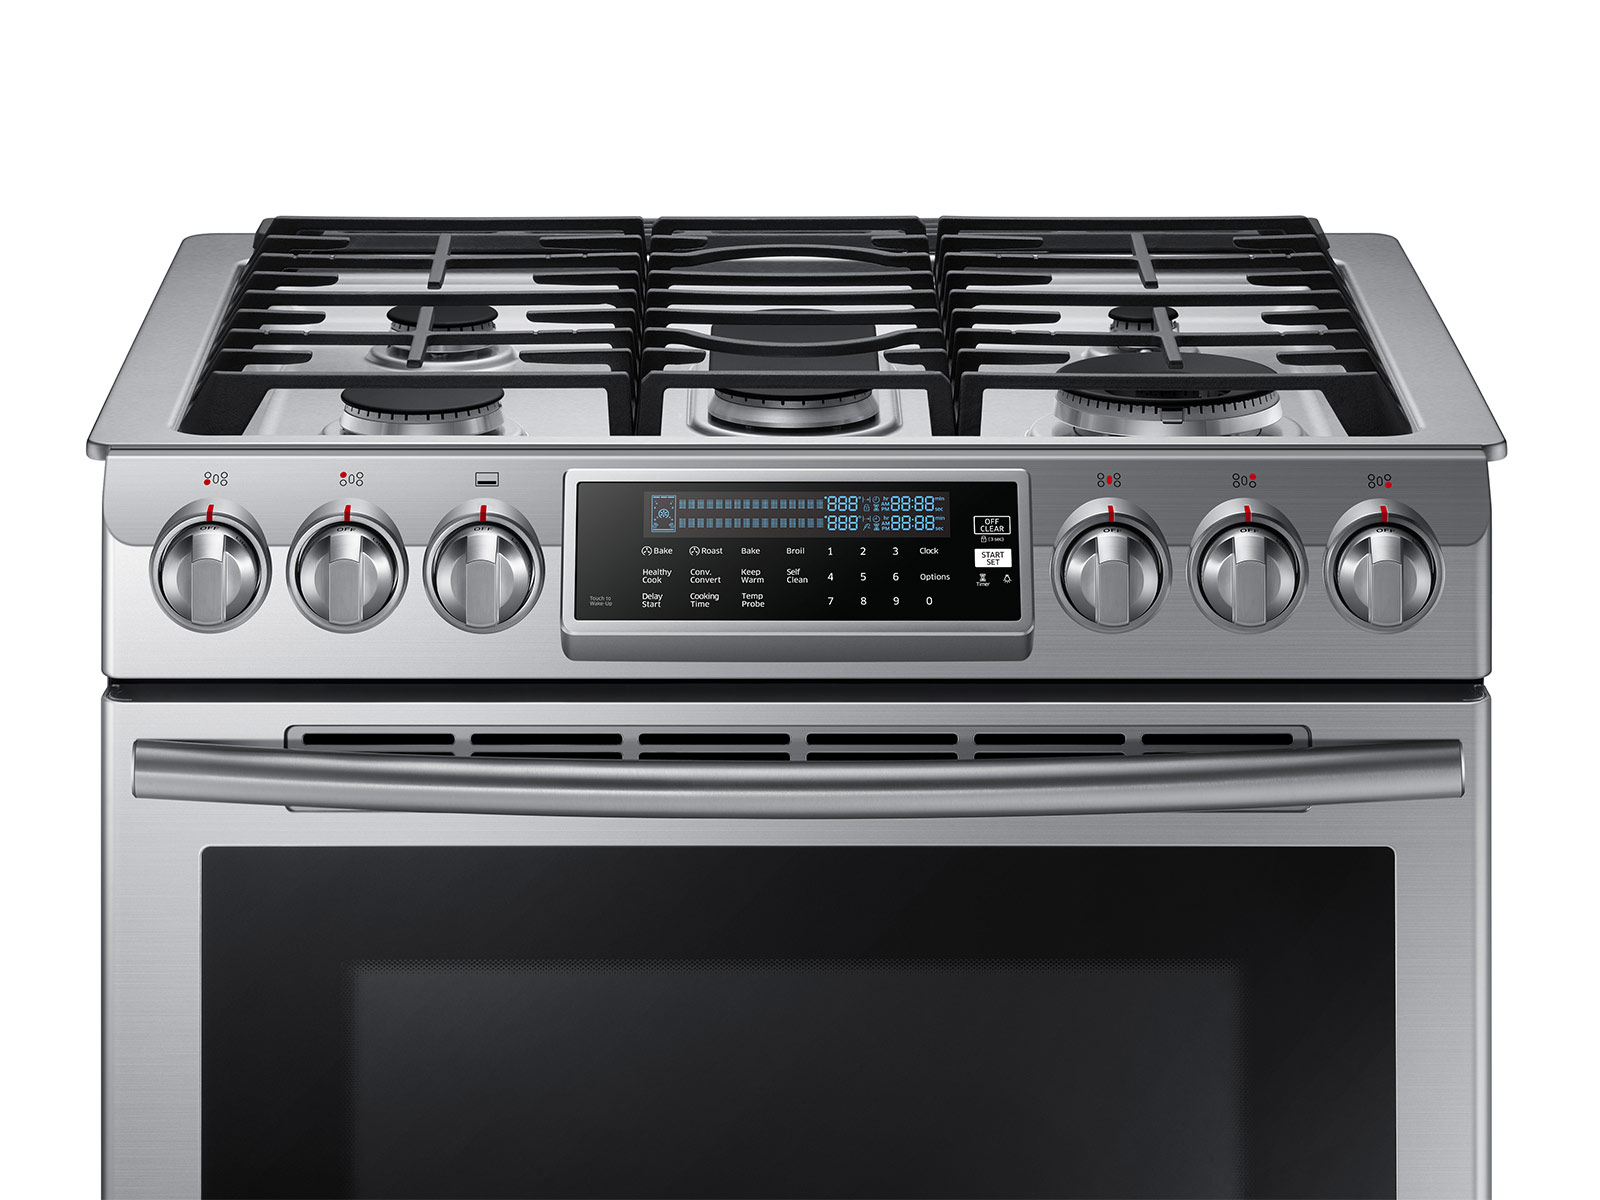 hight resolution of wiring diagram for ga top stove wiring diagram databse wiring diagram for ge jgp970 gas cooktop